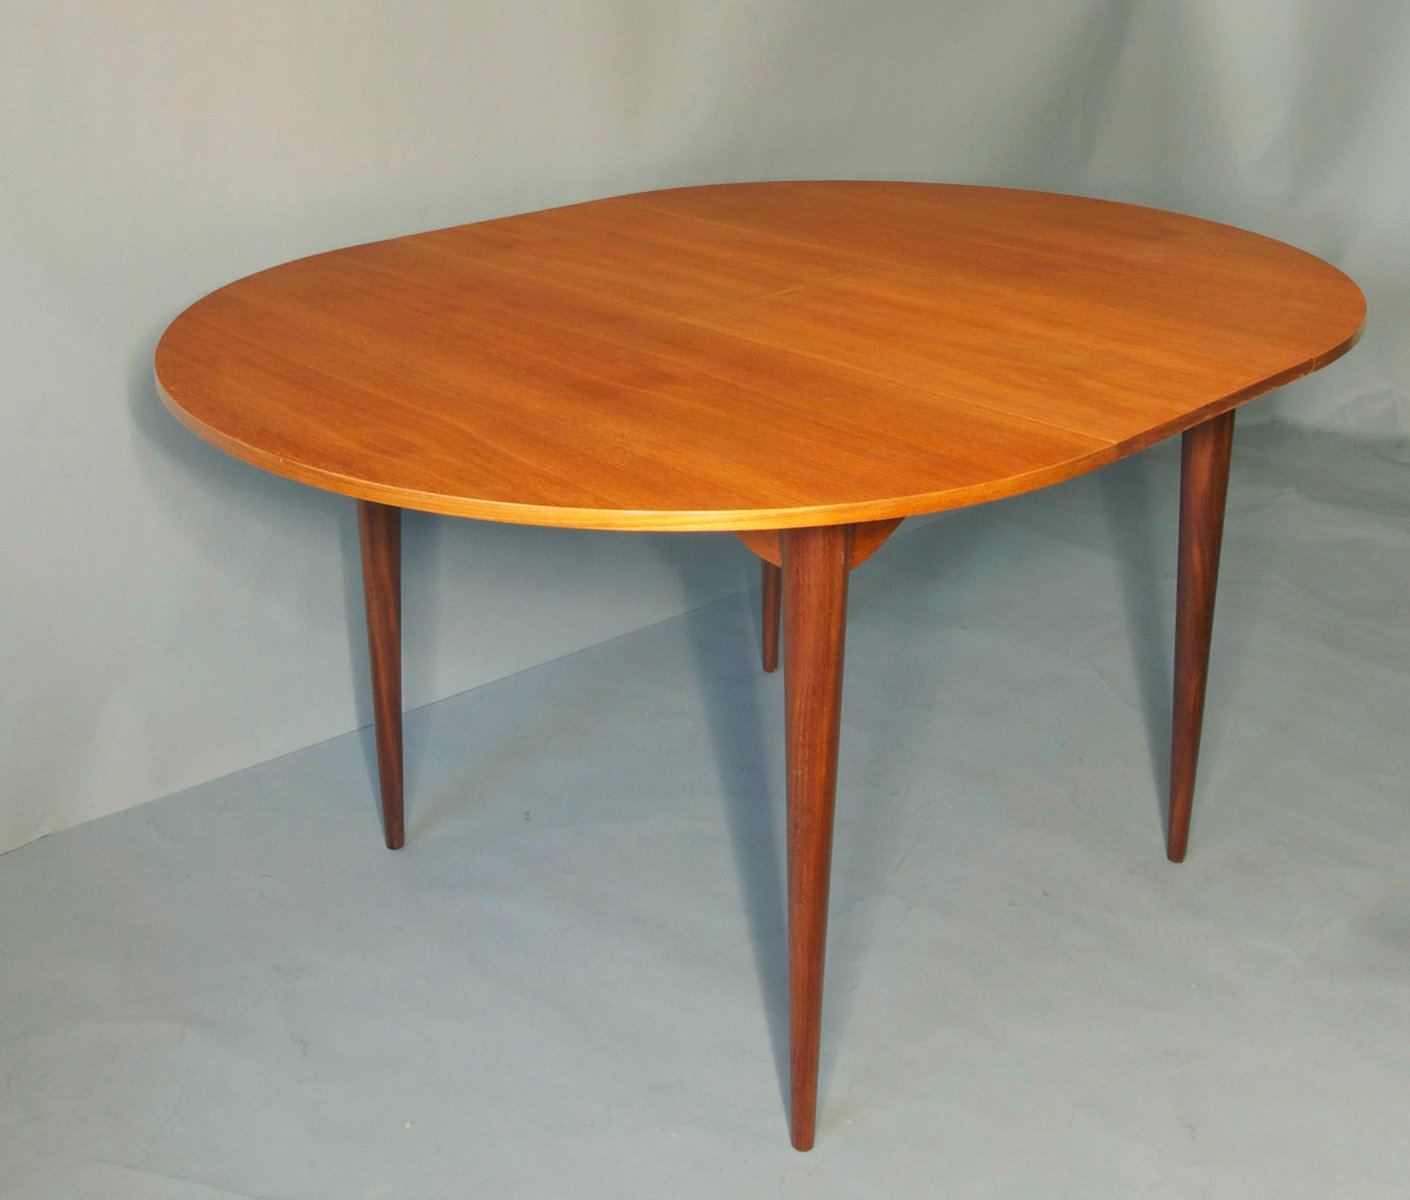 Mid Century Circular Teak Extendable Dining Table 1960s  : mid century circular teak extendable dining table 1960s 2 from www.pamono.co.uk size 1410 x 1200 jpeg 74kB